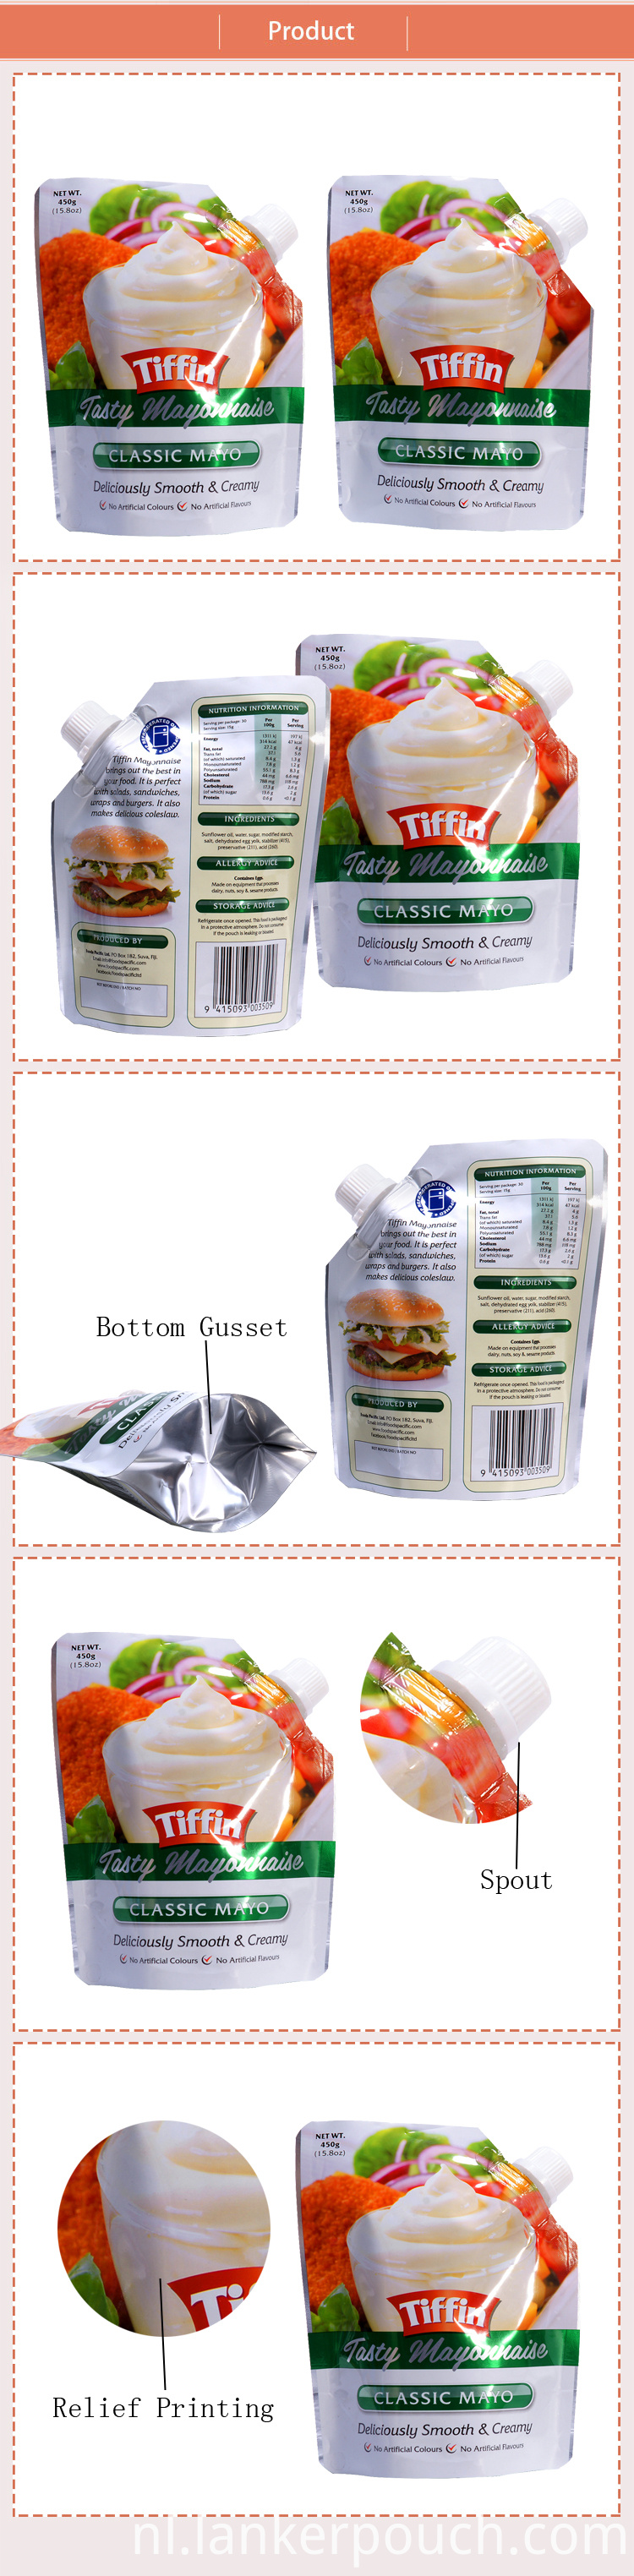 Bag Food Spout Pouch Fruit Salad Packaging